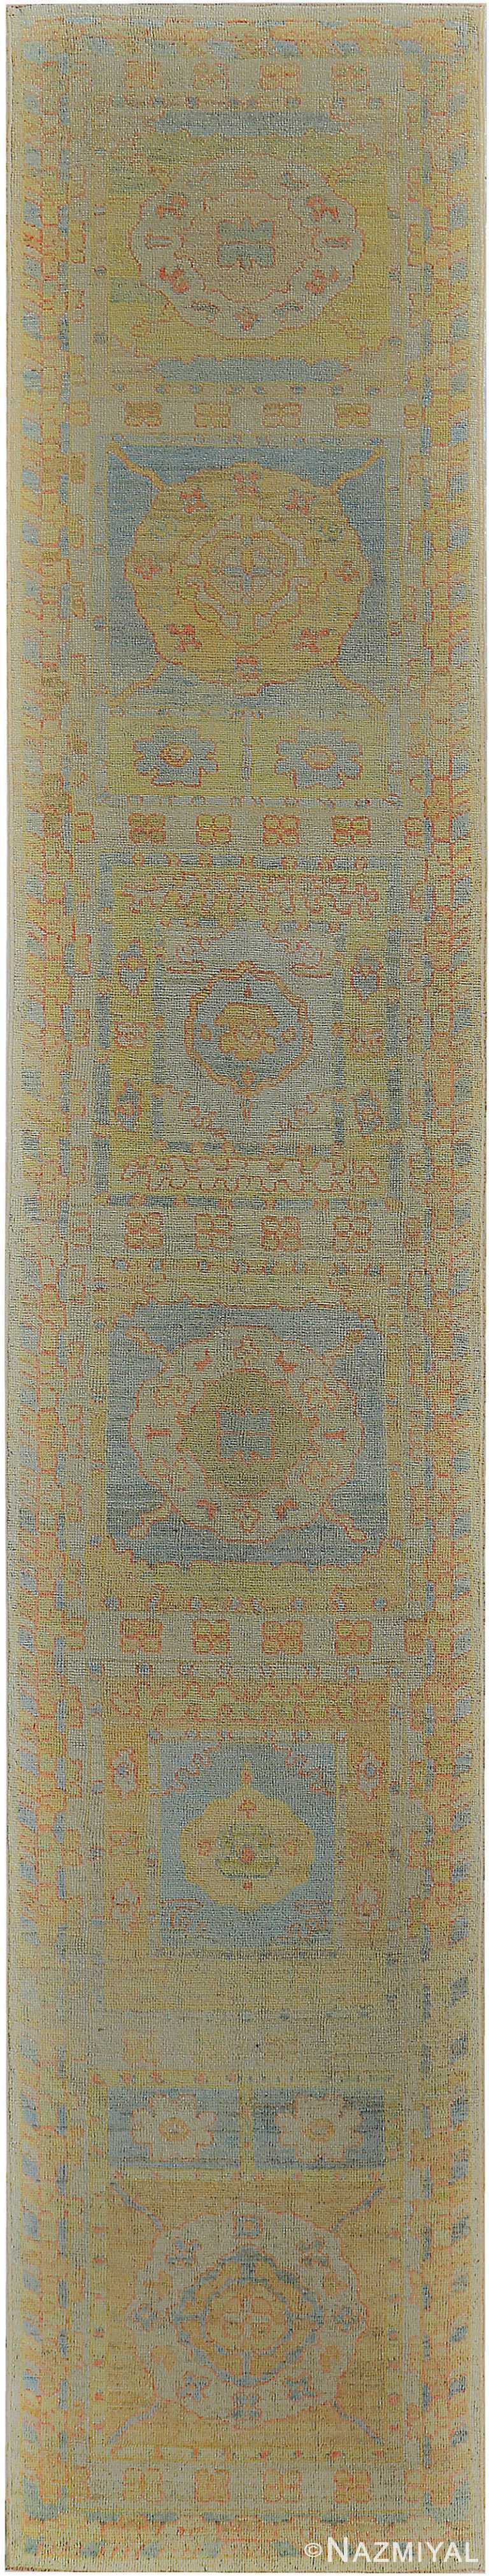 Garden Design Modern Turkish Oushak Runner Rug 60394 by Nazmiyal NYC